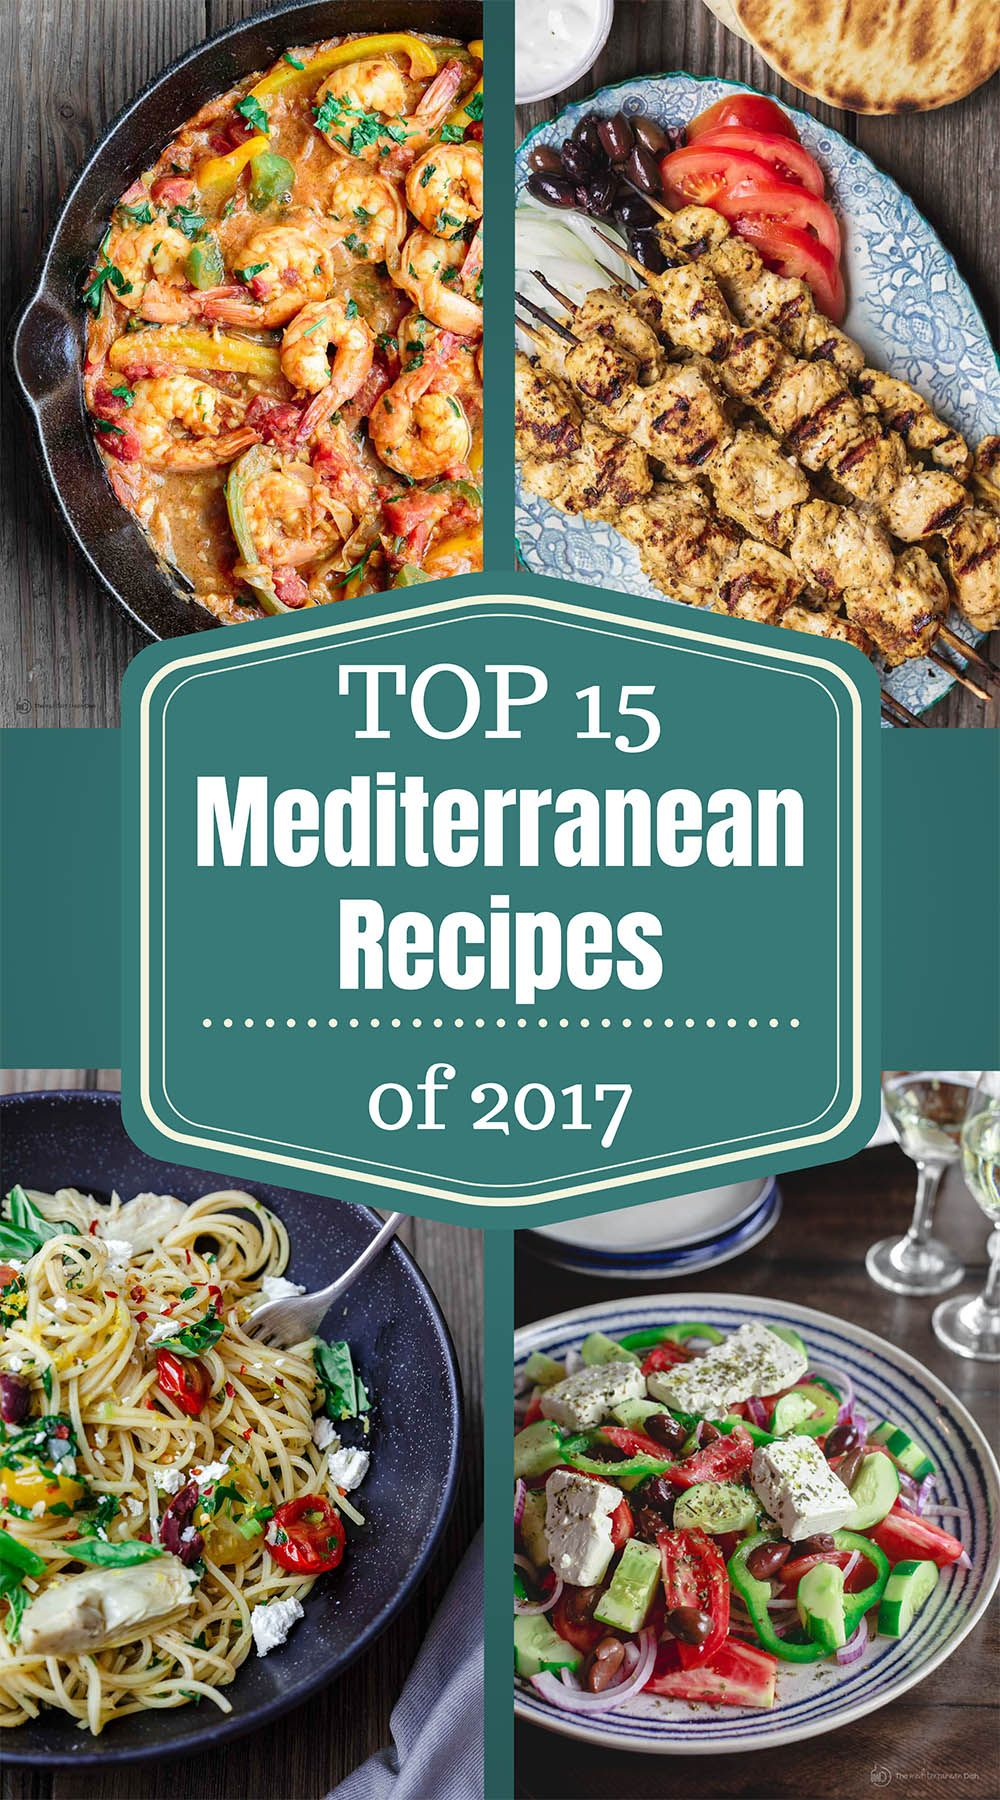 Here We Are At The End Of Another Great Year Working Our Way Through Me Easy Mediterranean Diet Recipes Mediterranean Diet Recipes Mediterranean Diet Meal Plan